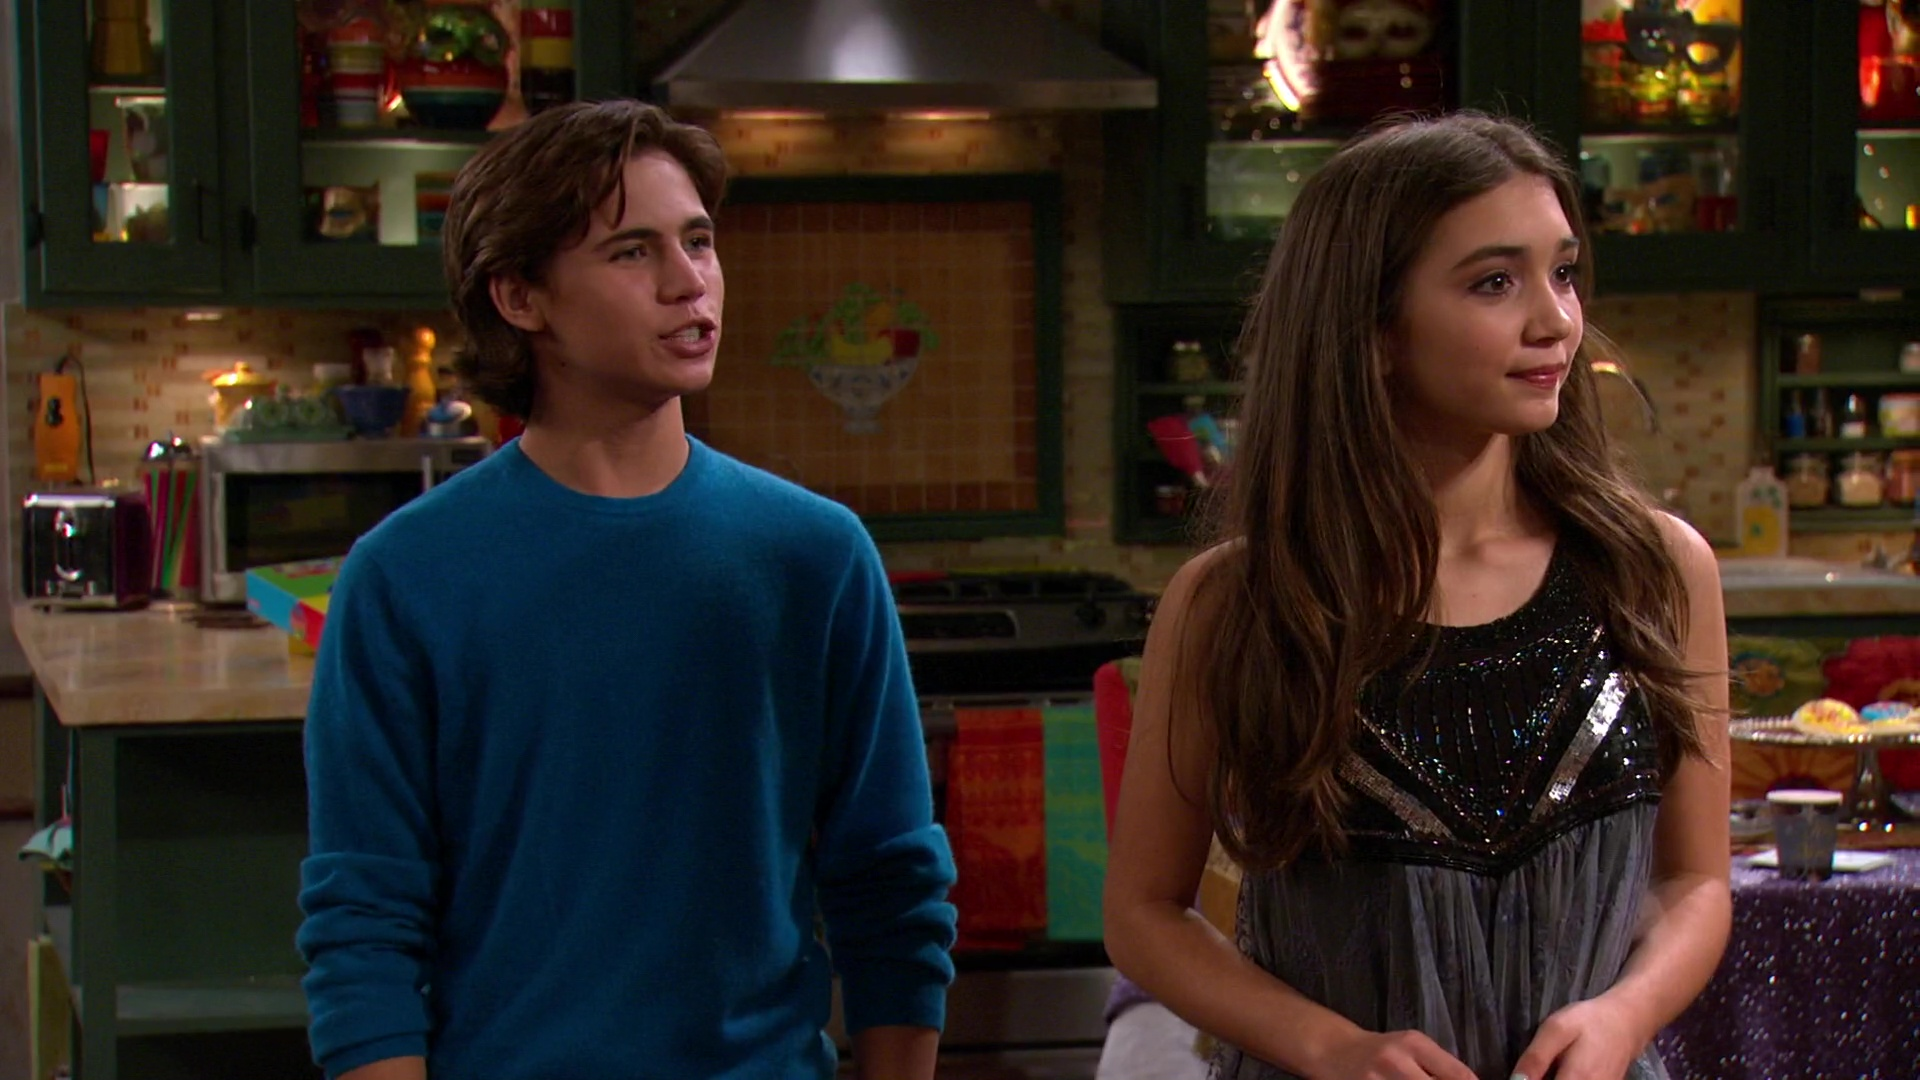 Tissue is riley and lucas from girl meets world dating in real life